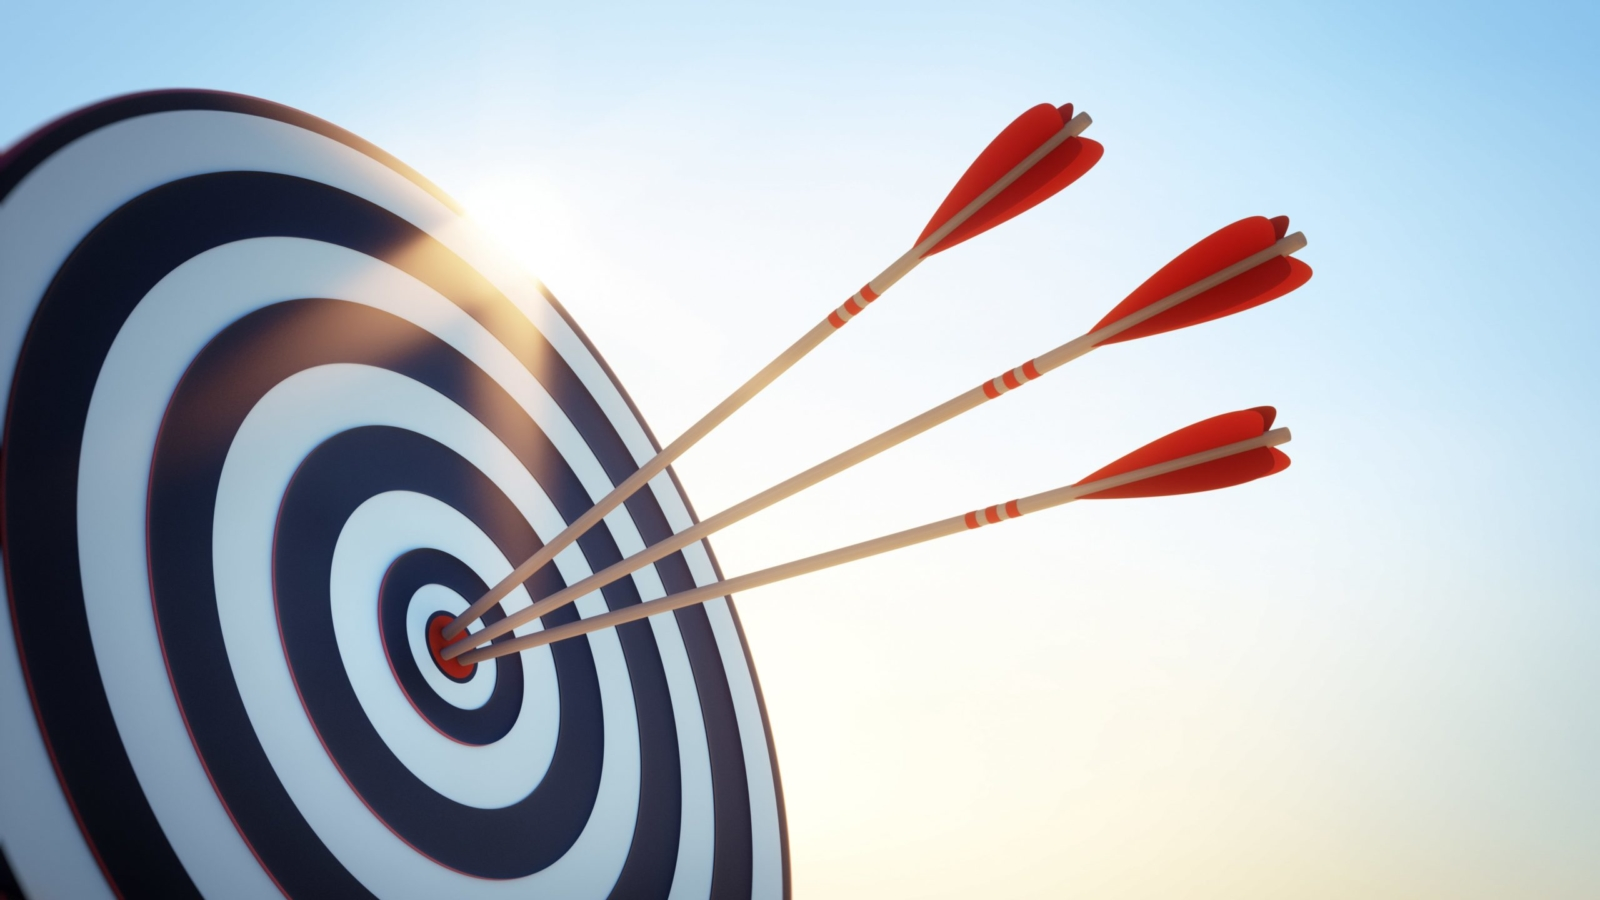 3 arrows in the bulls-eye of a target